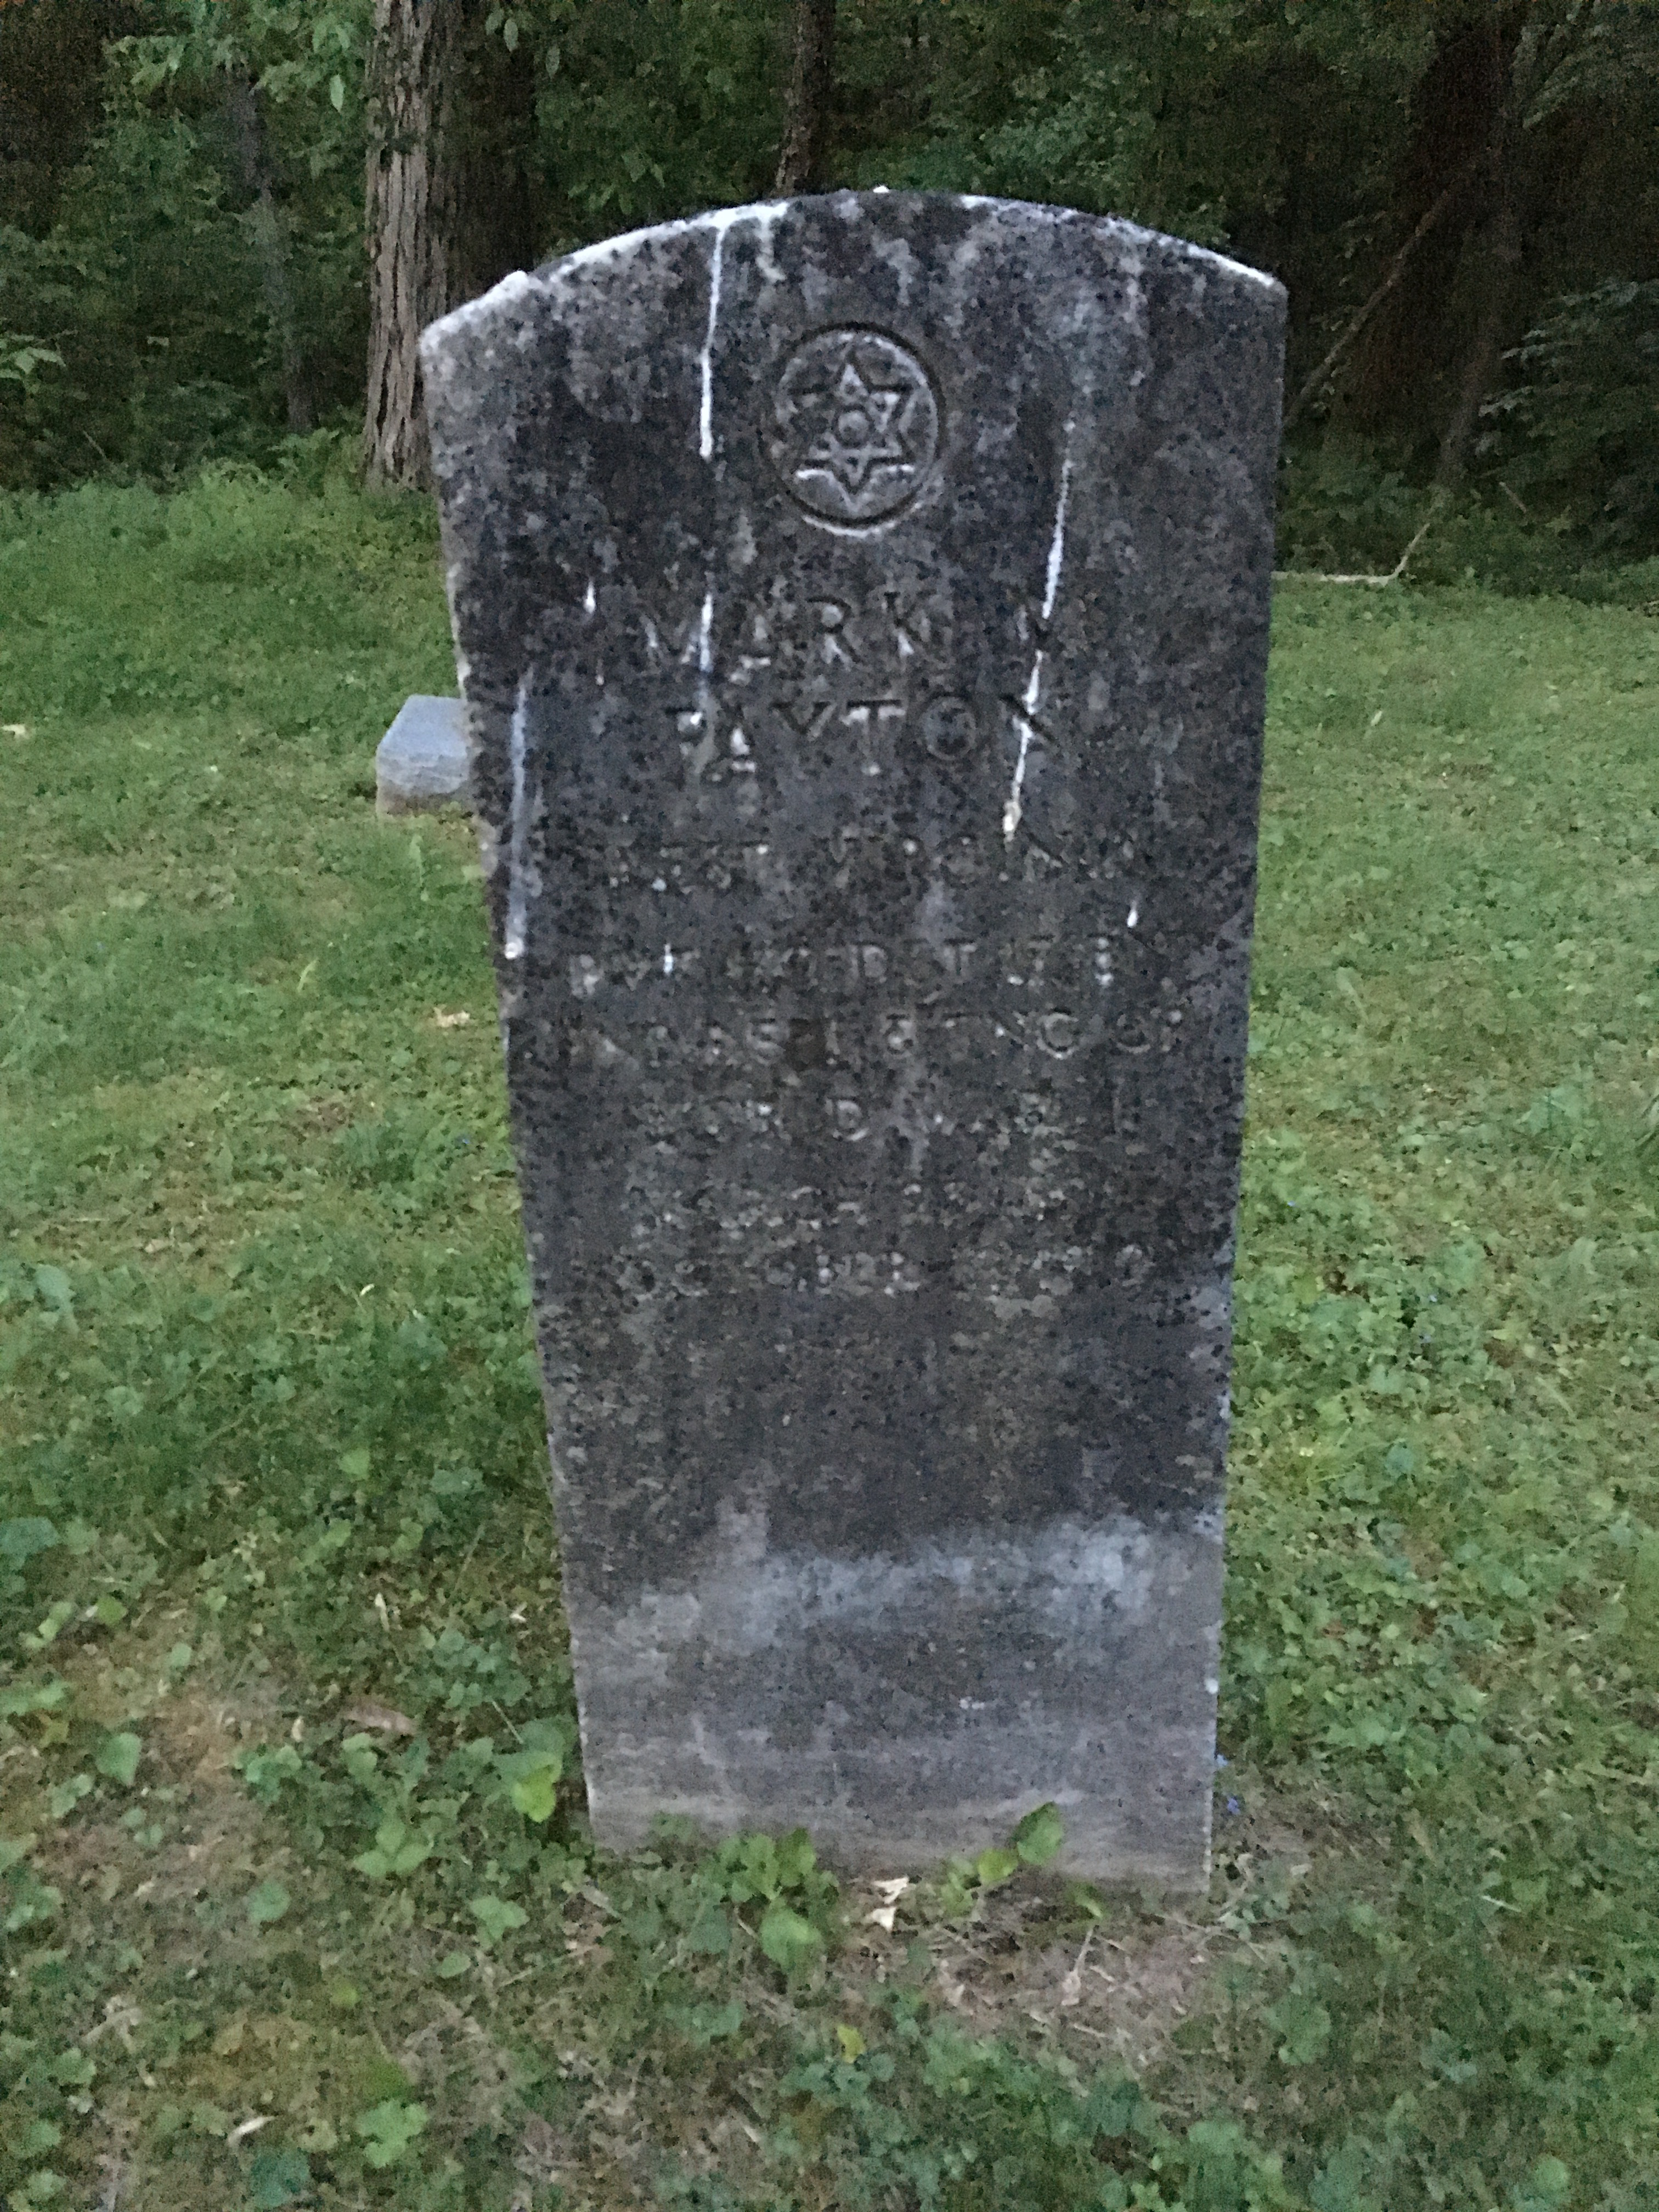 Headstone at Mud River Baptist Church Cemetery